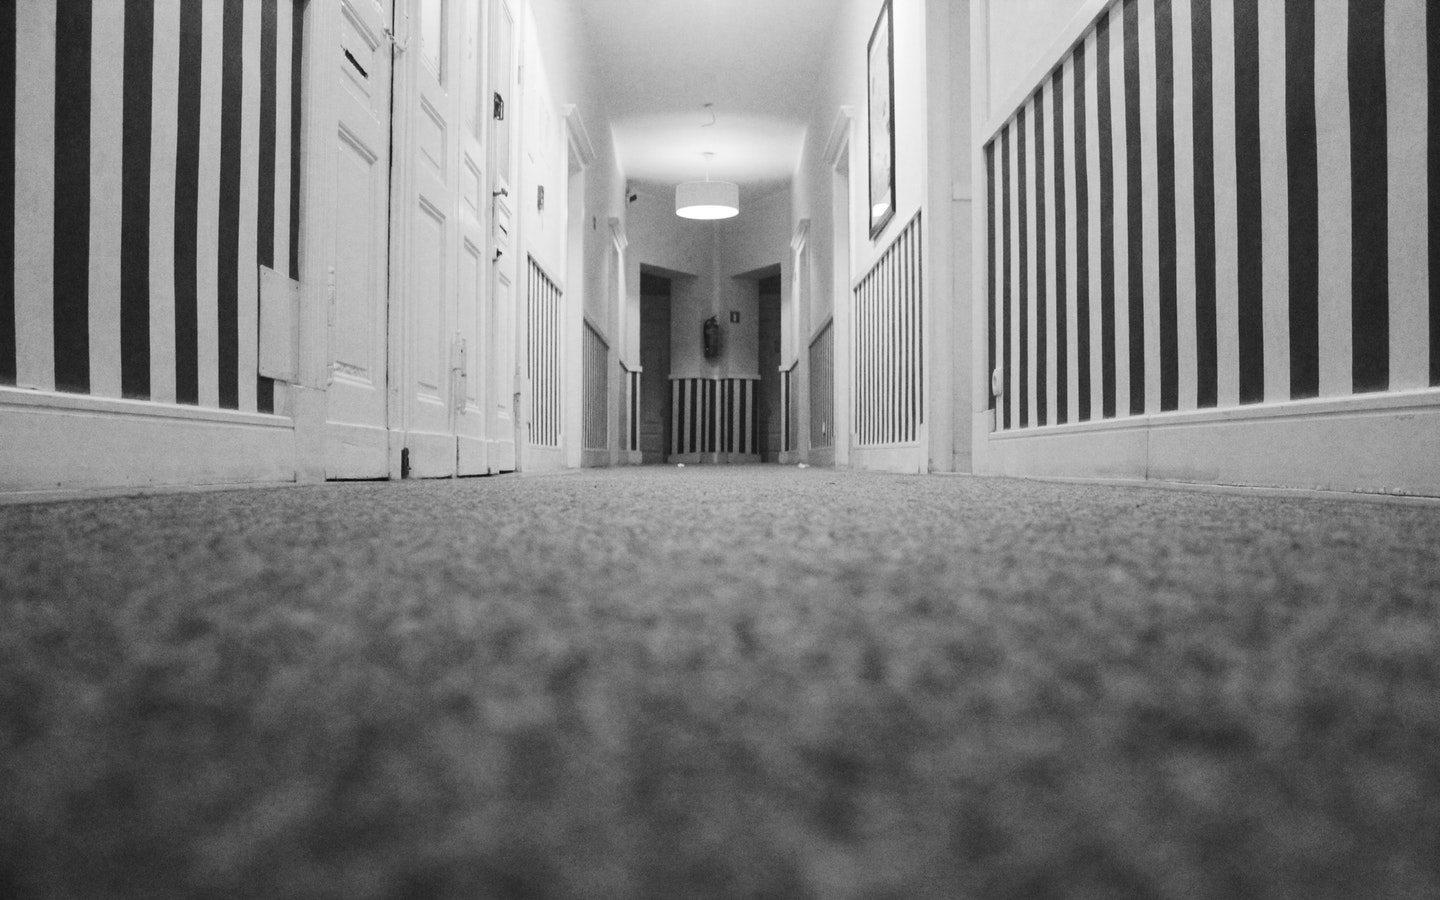 low angle carpet shot